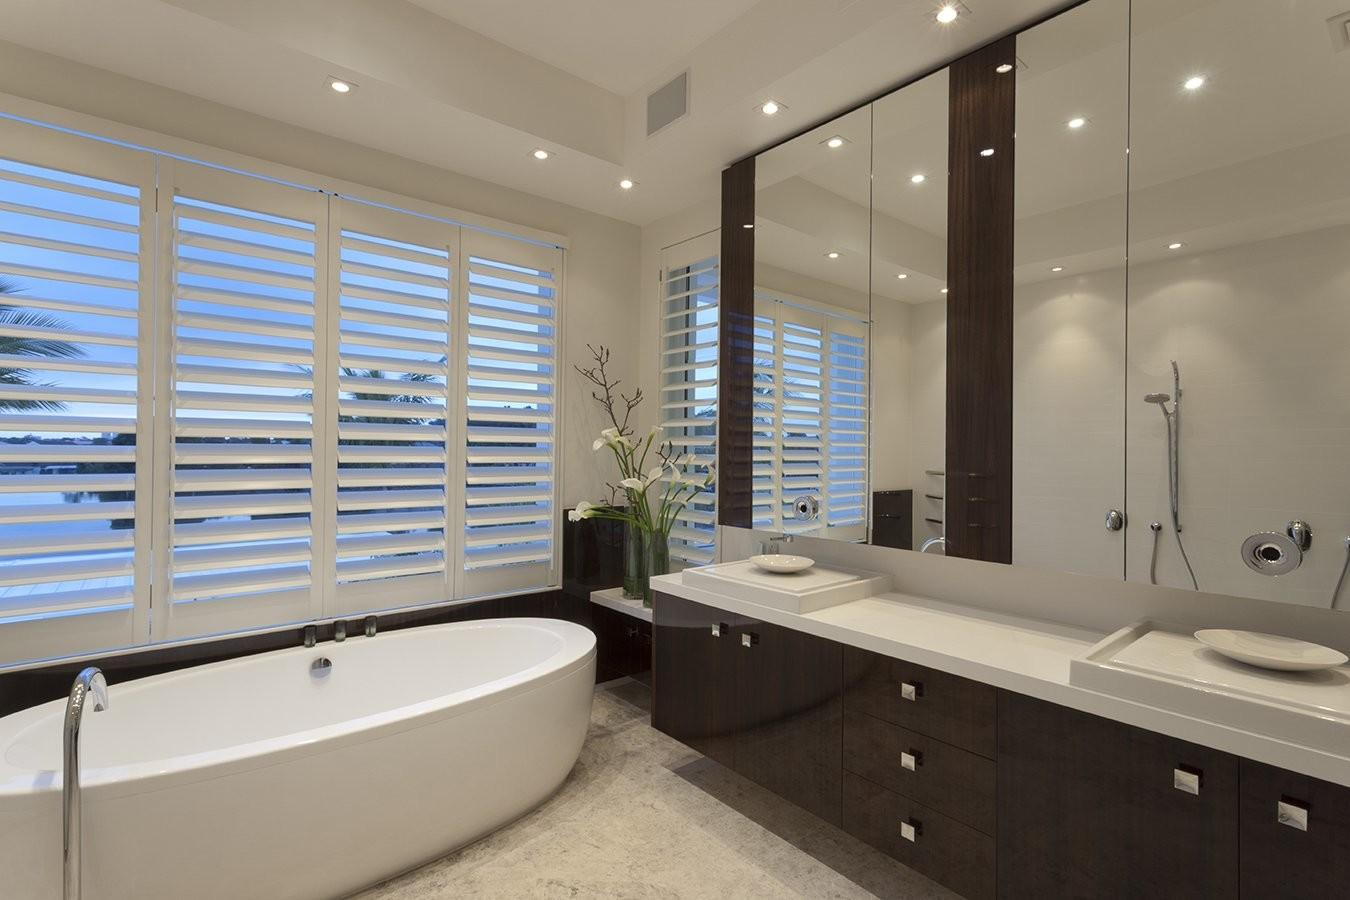 Bathroom Simple Ways Budget Small Renovation